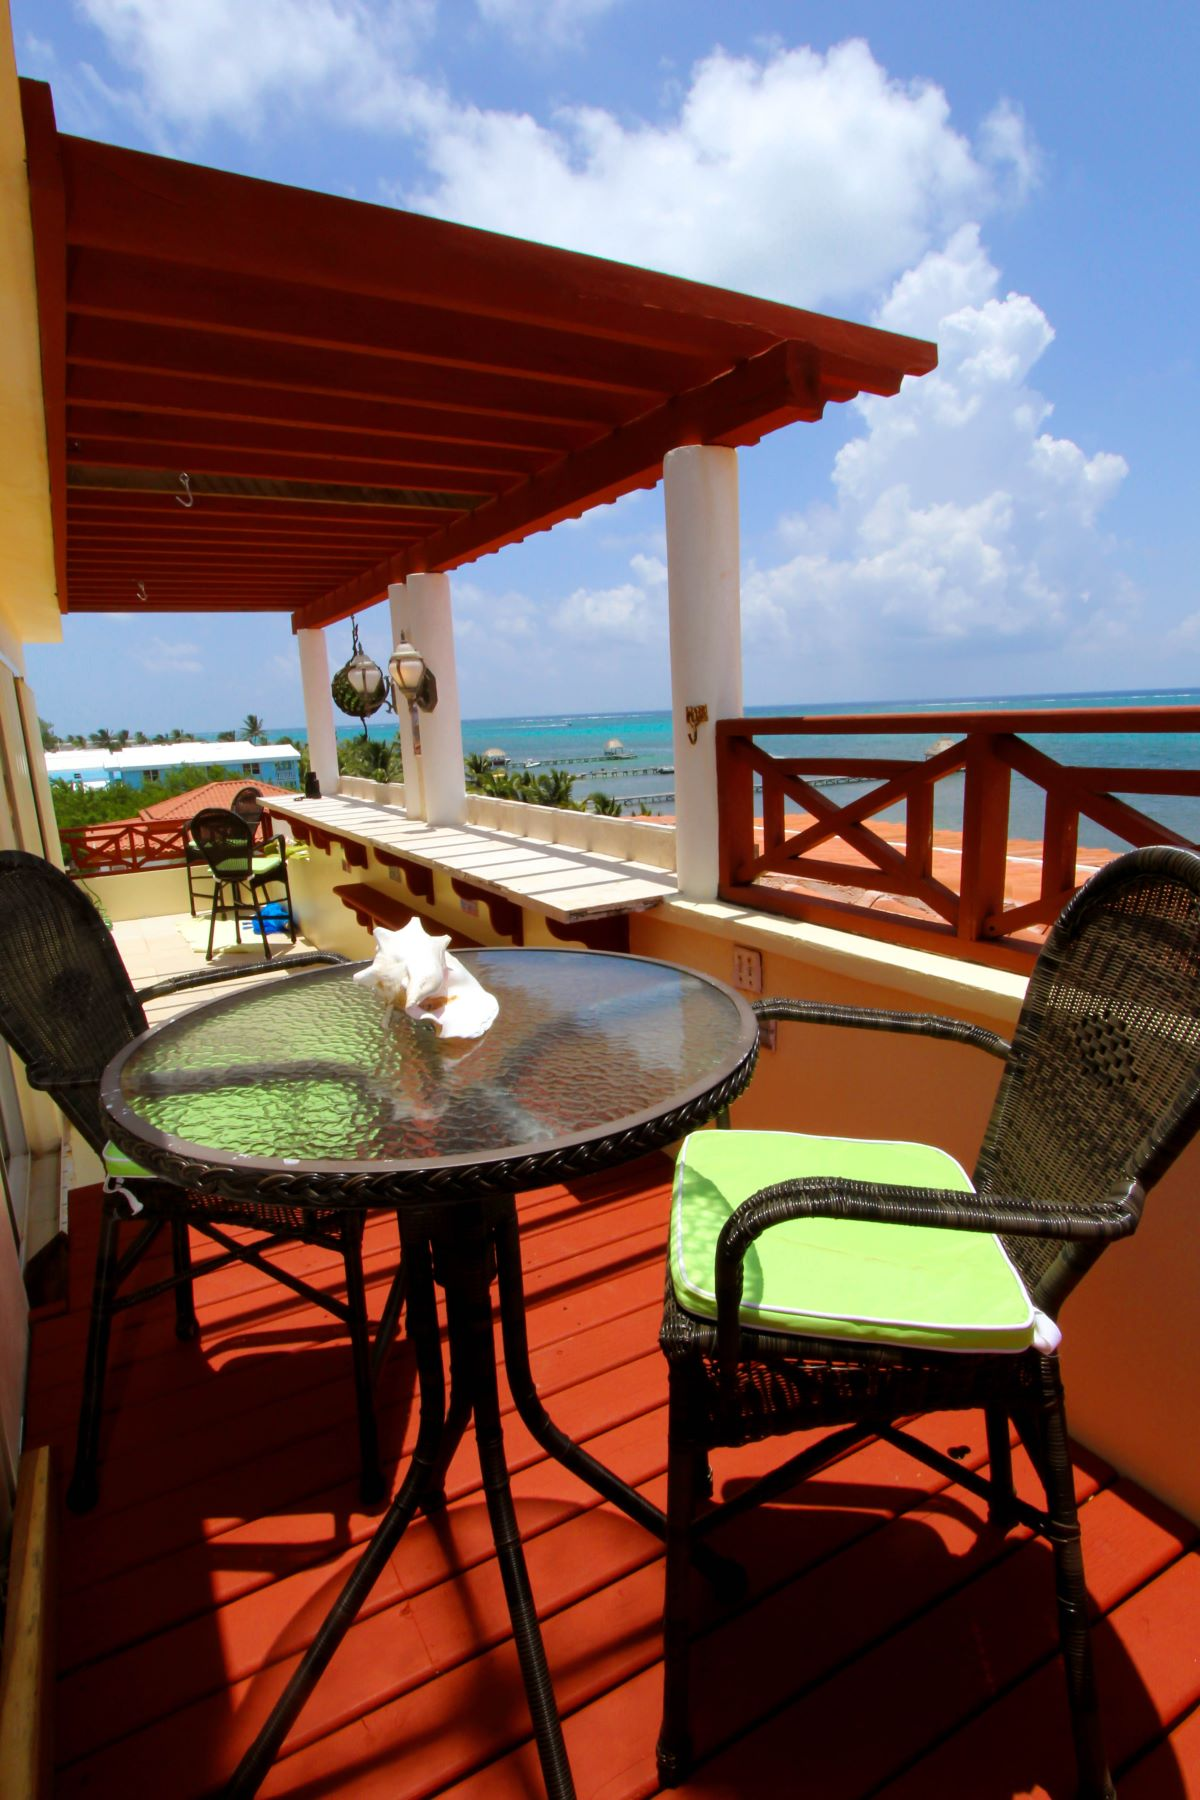 Additional photo for property listing at Miramar San Pedro Town, Ambergris Caye Belice